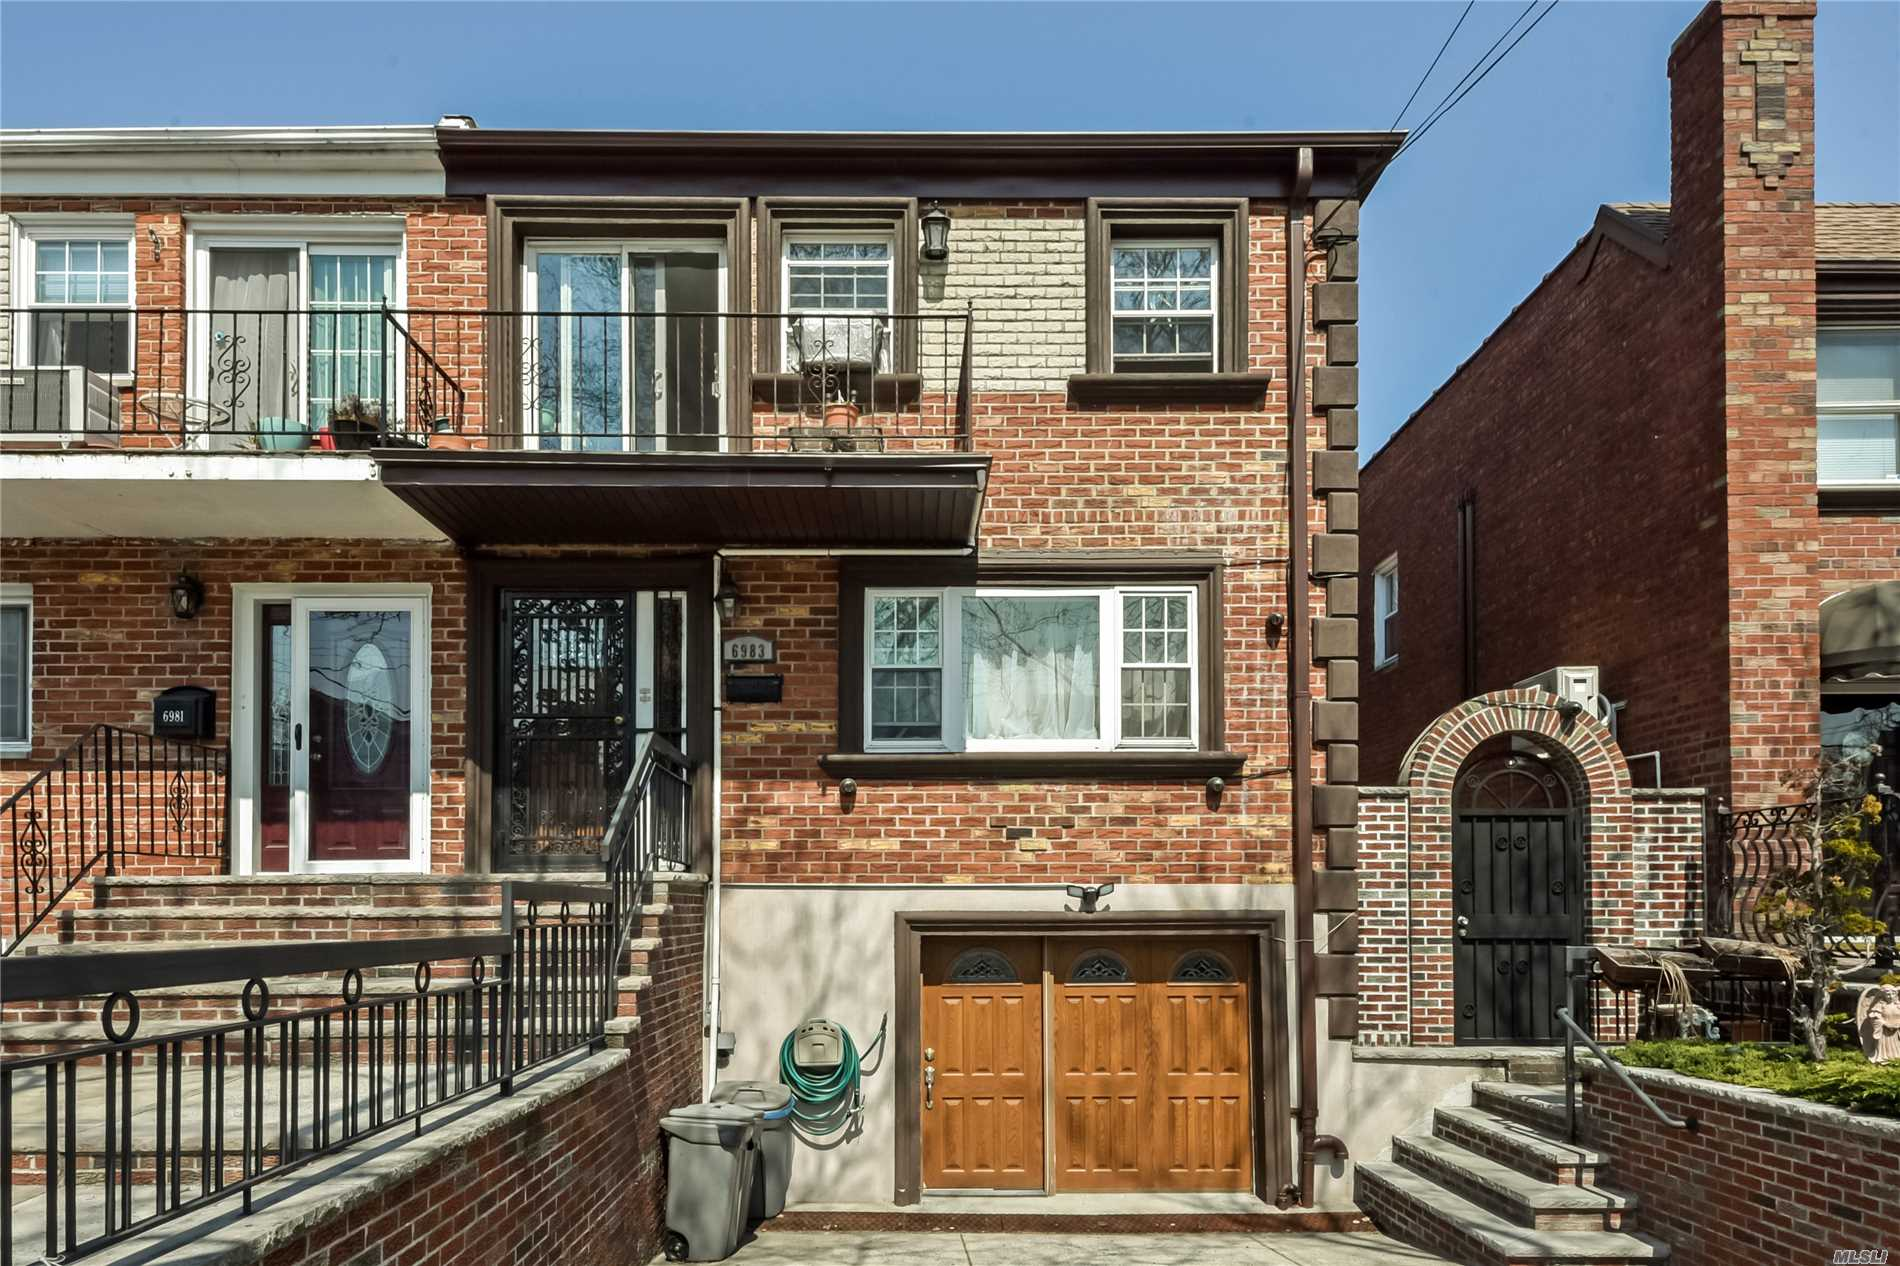 Excellent Condition 2 Fam Brk Home Located Near Eliot Ave (Xpress Bus To City), 1st Ll & Bsmt Used As Duplex (4 Bdrms, 2. Bths), 2nd Fl Has 6 Rms 3 Bdrms, 1.5 Bths, Garage & Pvt Drvway (Fits 2 Cars) In Front Of Home, Large Private Yard, All Modern, Granite & Stainless Stteel Kitchens, New Roof (2011), New Boiler, New Hw Tank Updated Windows, Pointing Done In 2016, Move Right In..